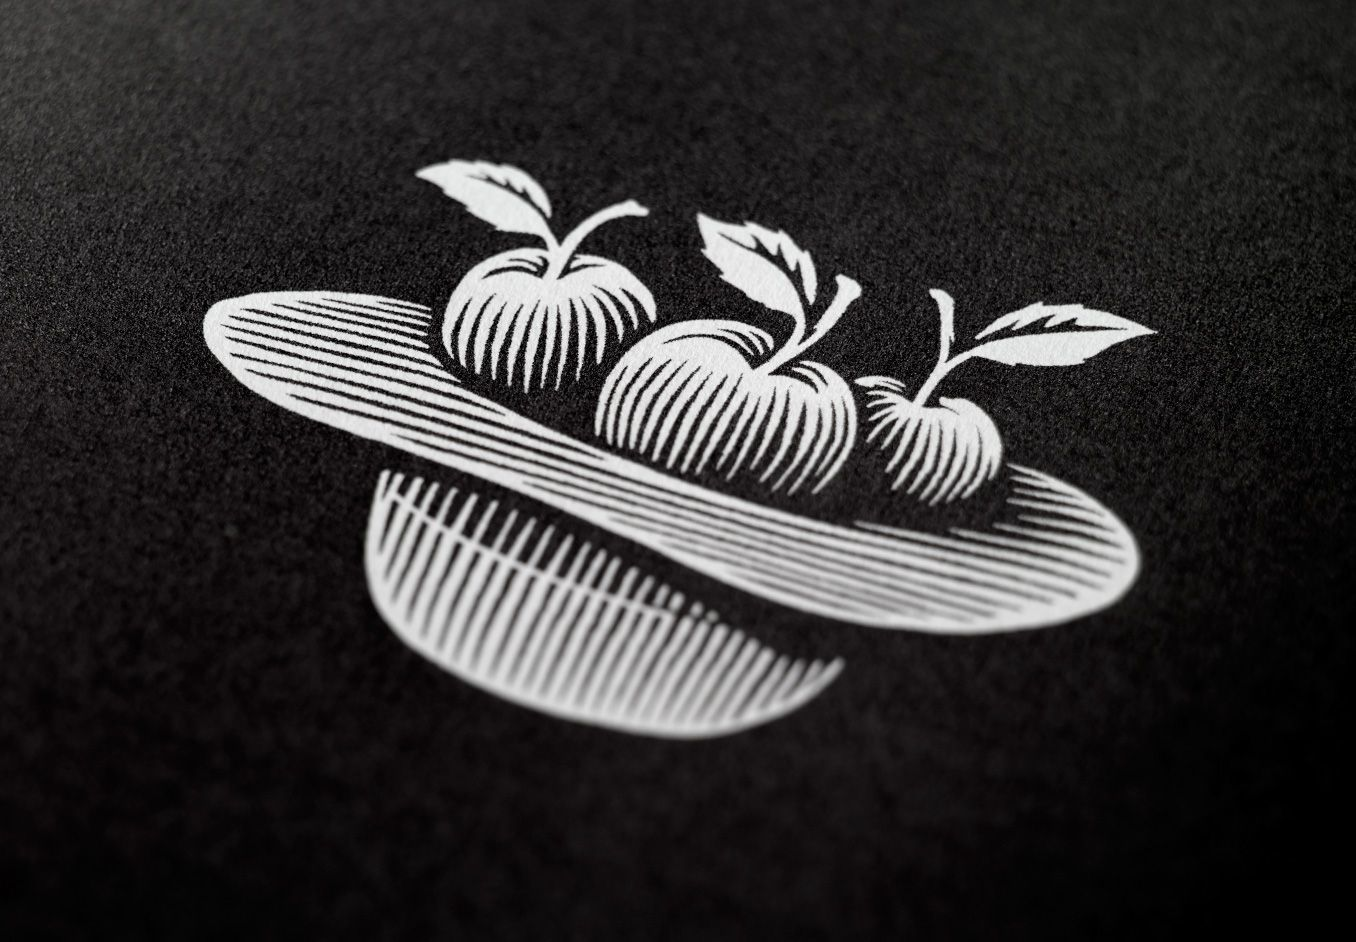 Jack Daniel's / Jack Daniel's Hat / Design / Branding / Tennessee Cider / Cider / Hard Cider / Apples / Whiskey / Old No.7 / Woodcut /  Black & White